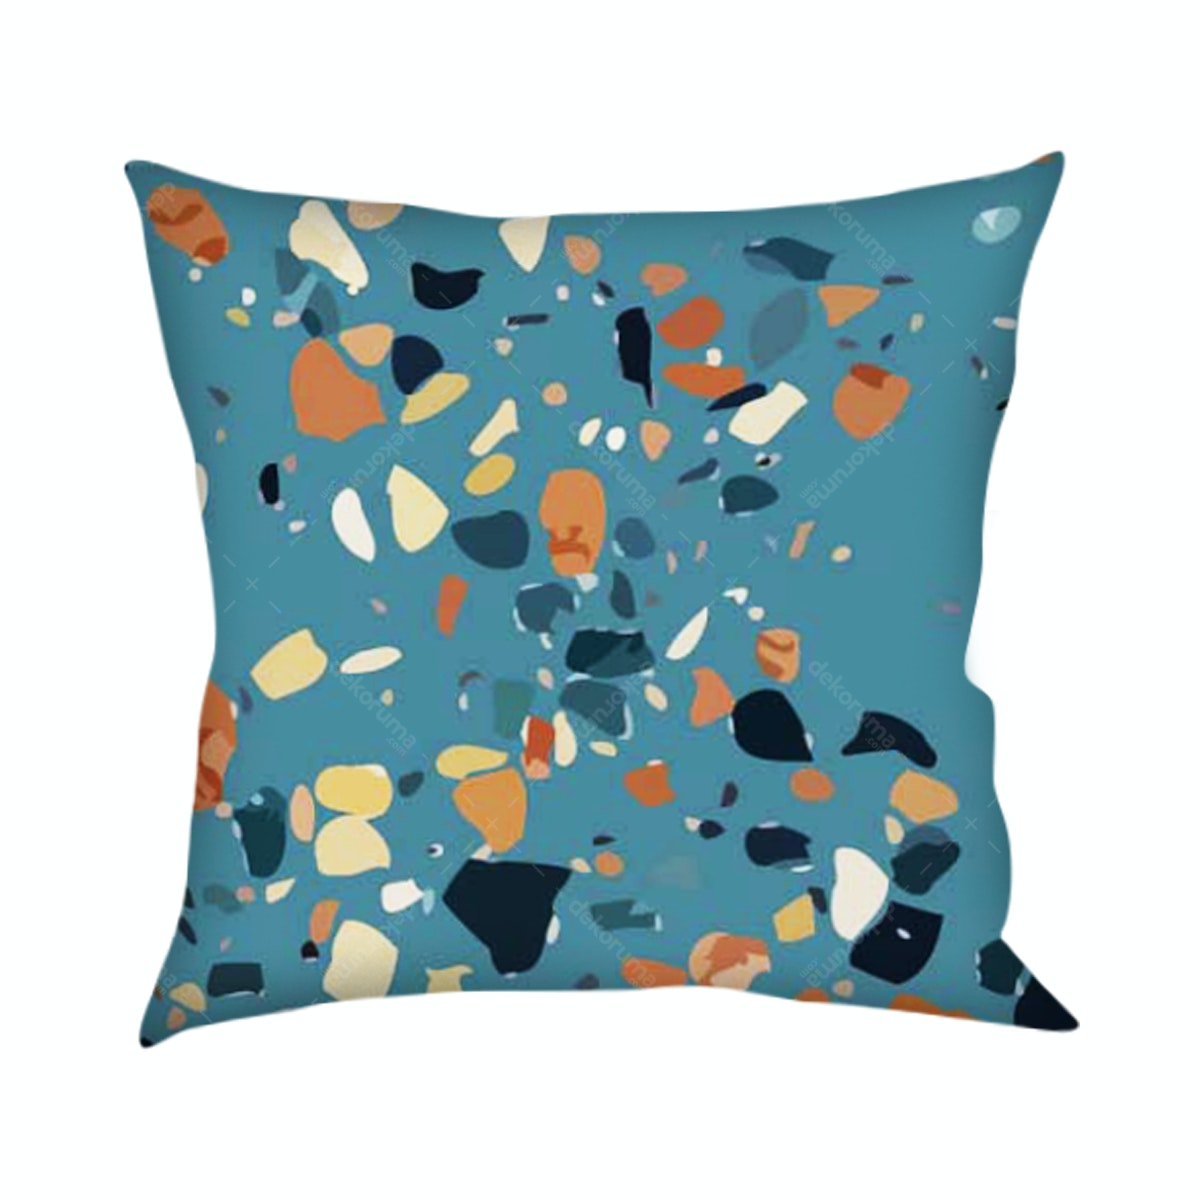 On&On Terrazzo 3 Cushion 40x40cm (Insert+Cover)